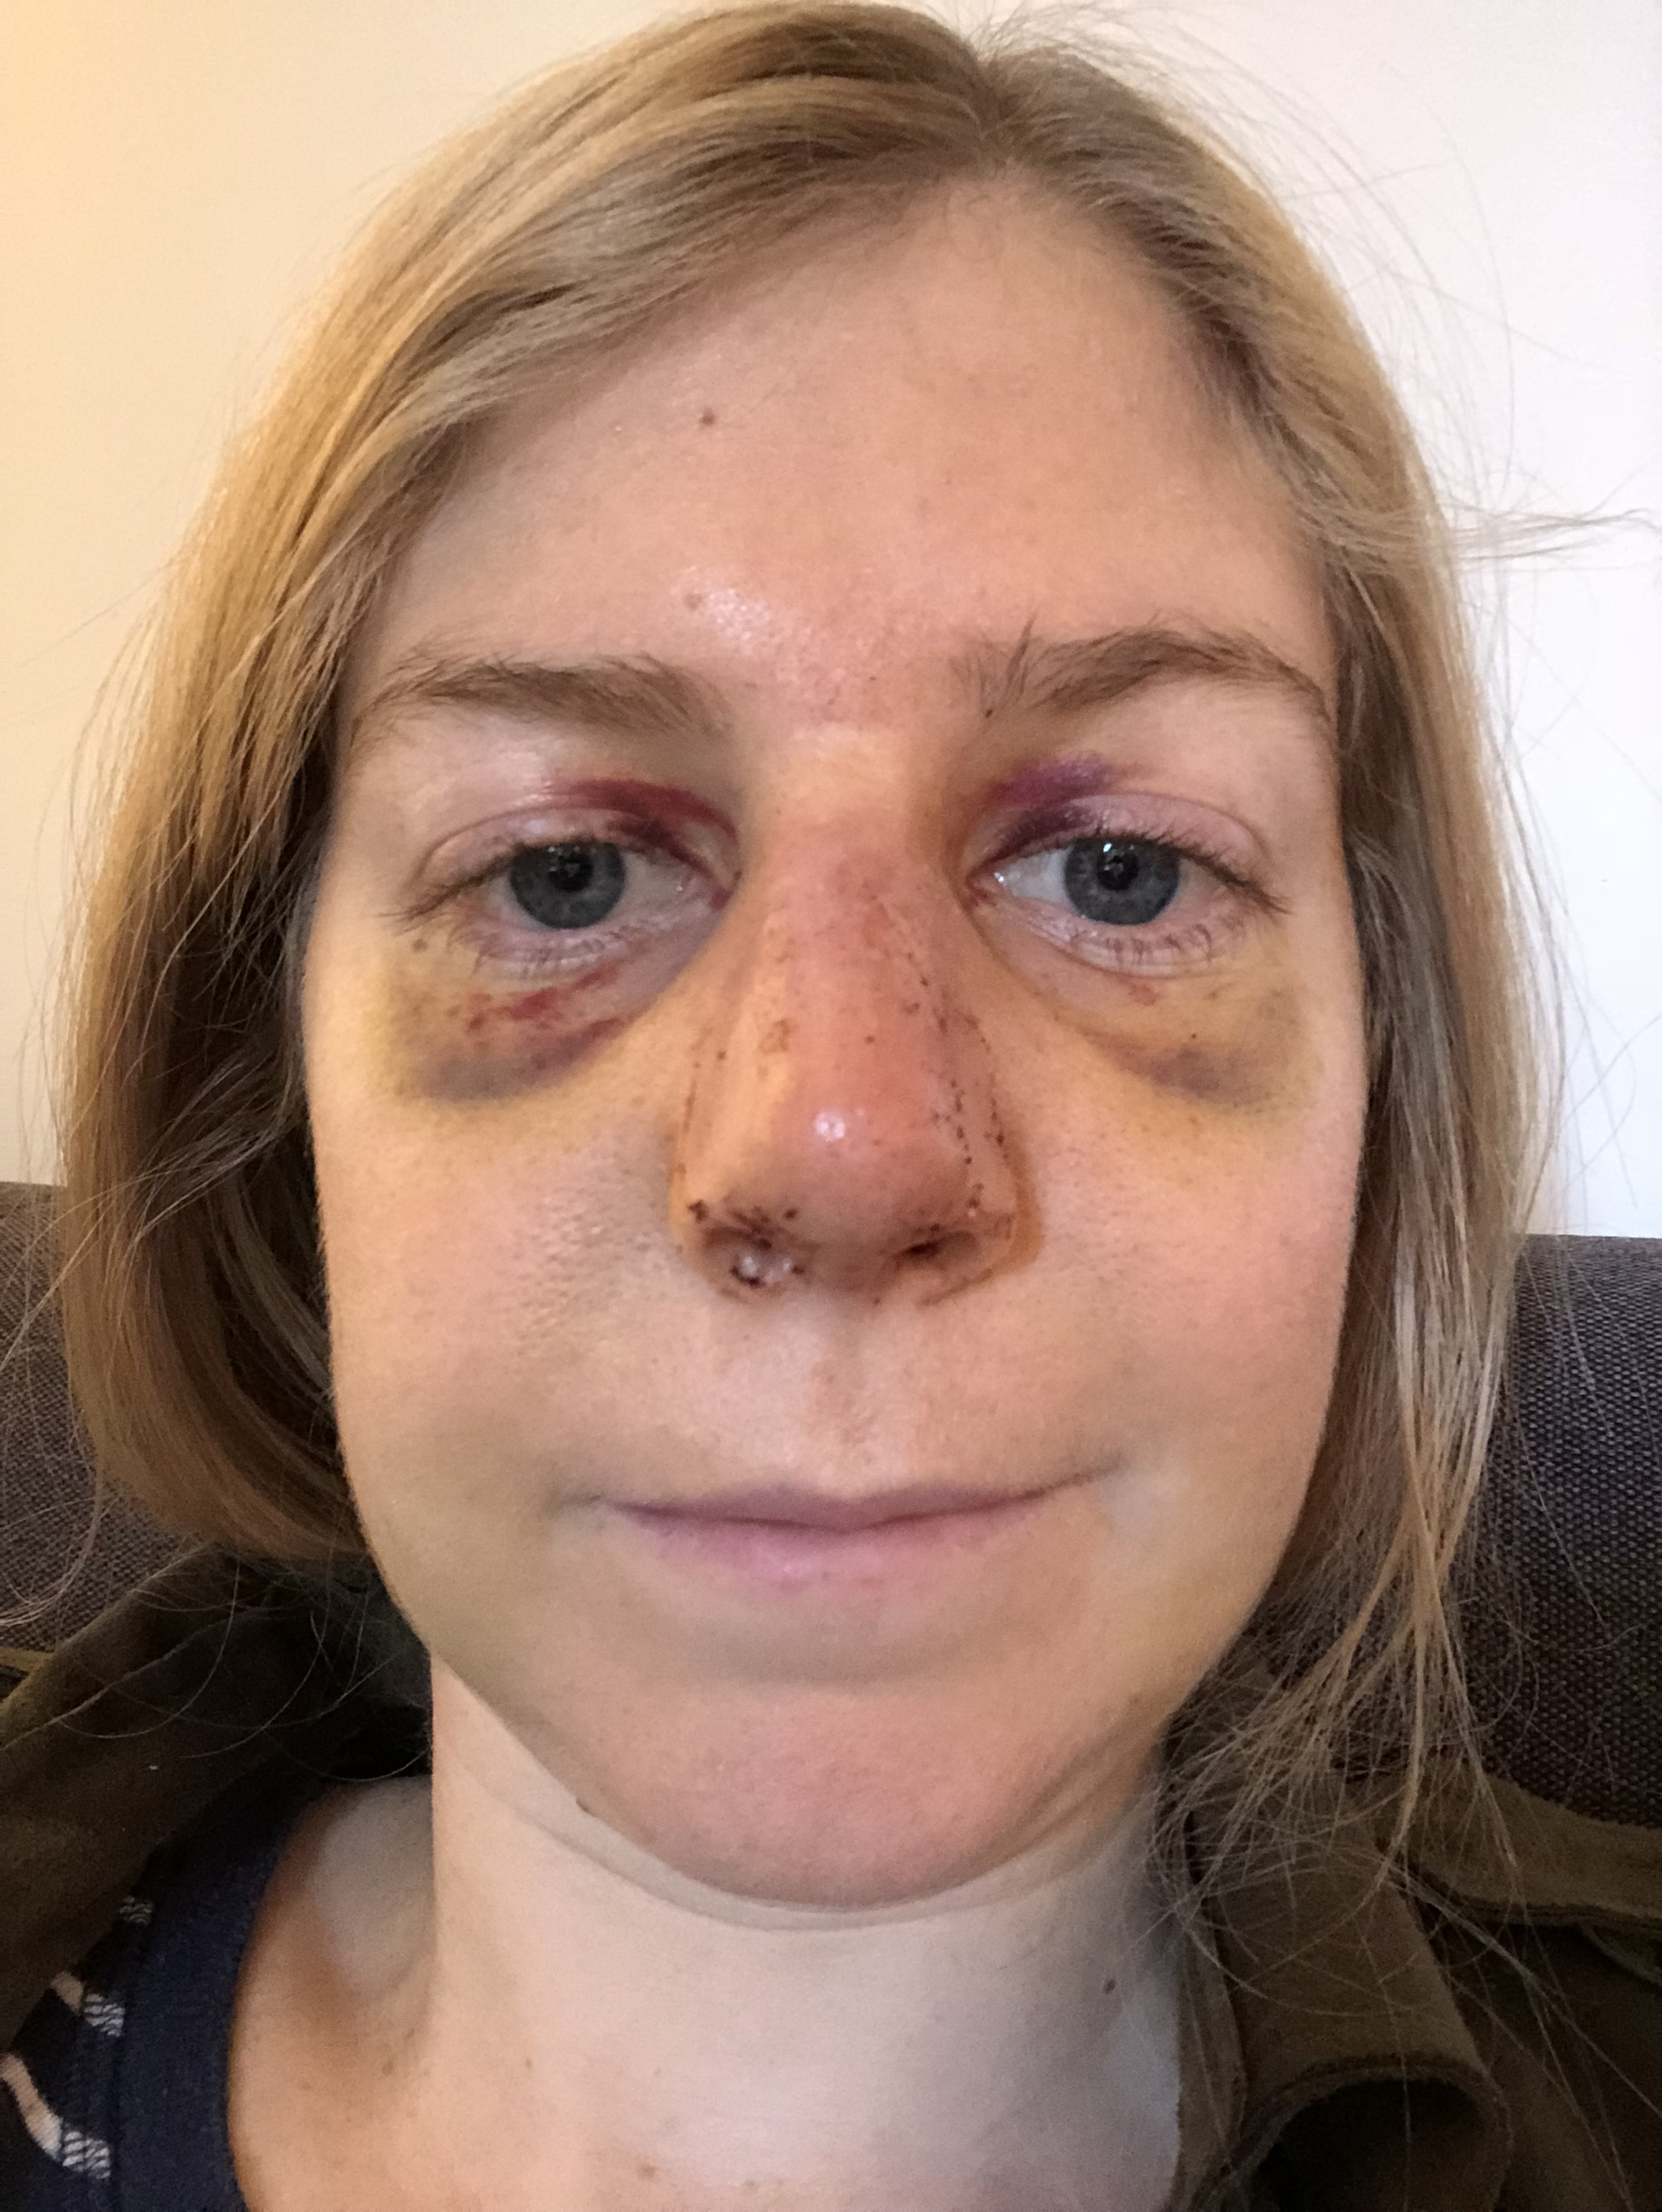 Nose Job Problems My Nose Is Swollen After My Cast Came Off Fluently Forward